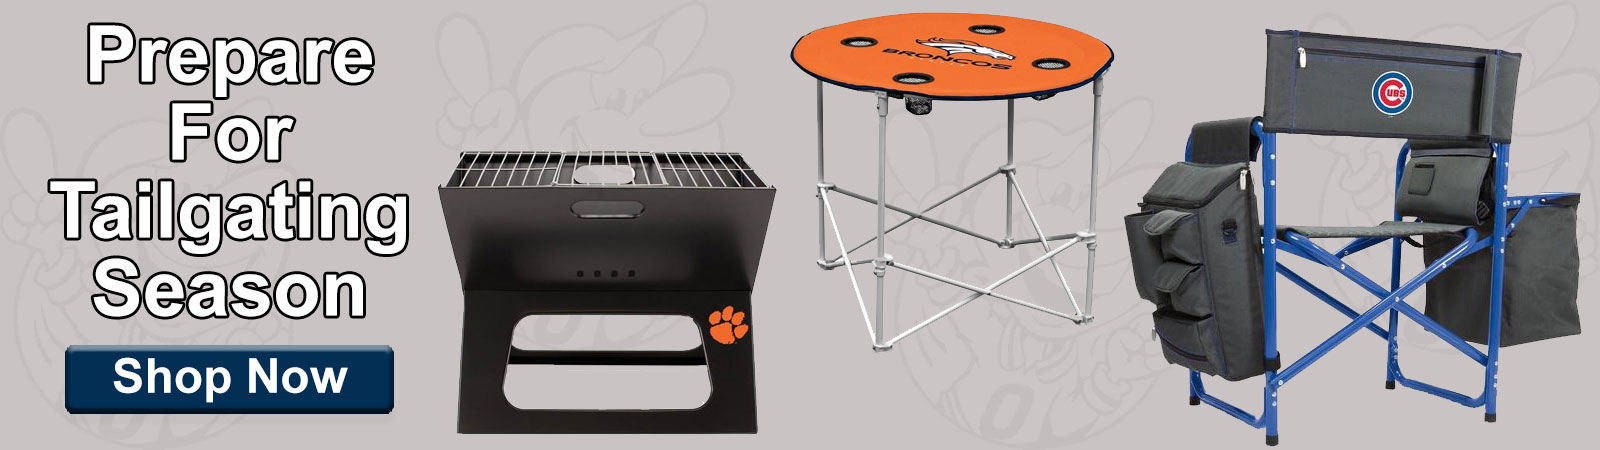 Tailgating Gear is here! Shop Now!